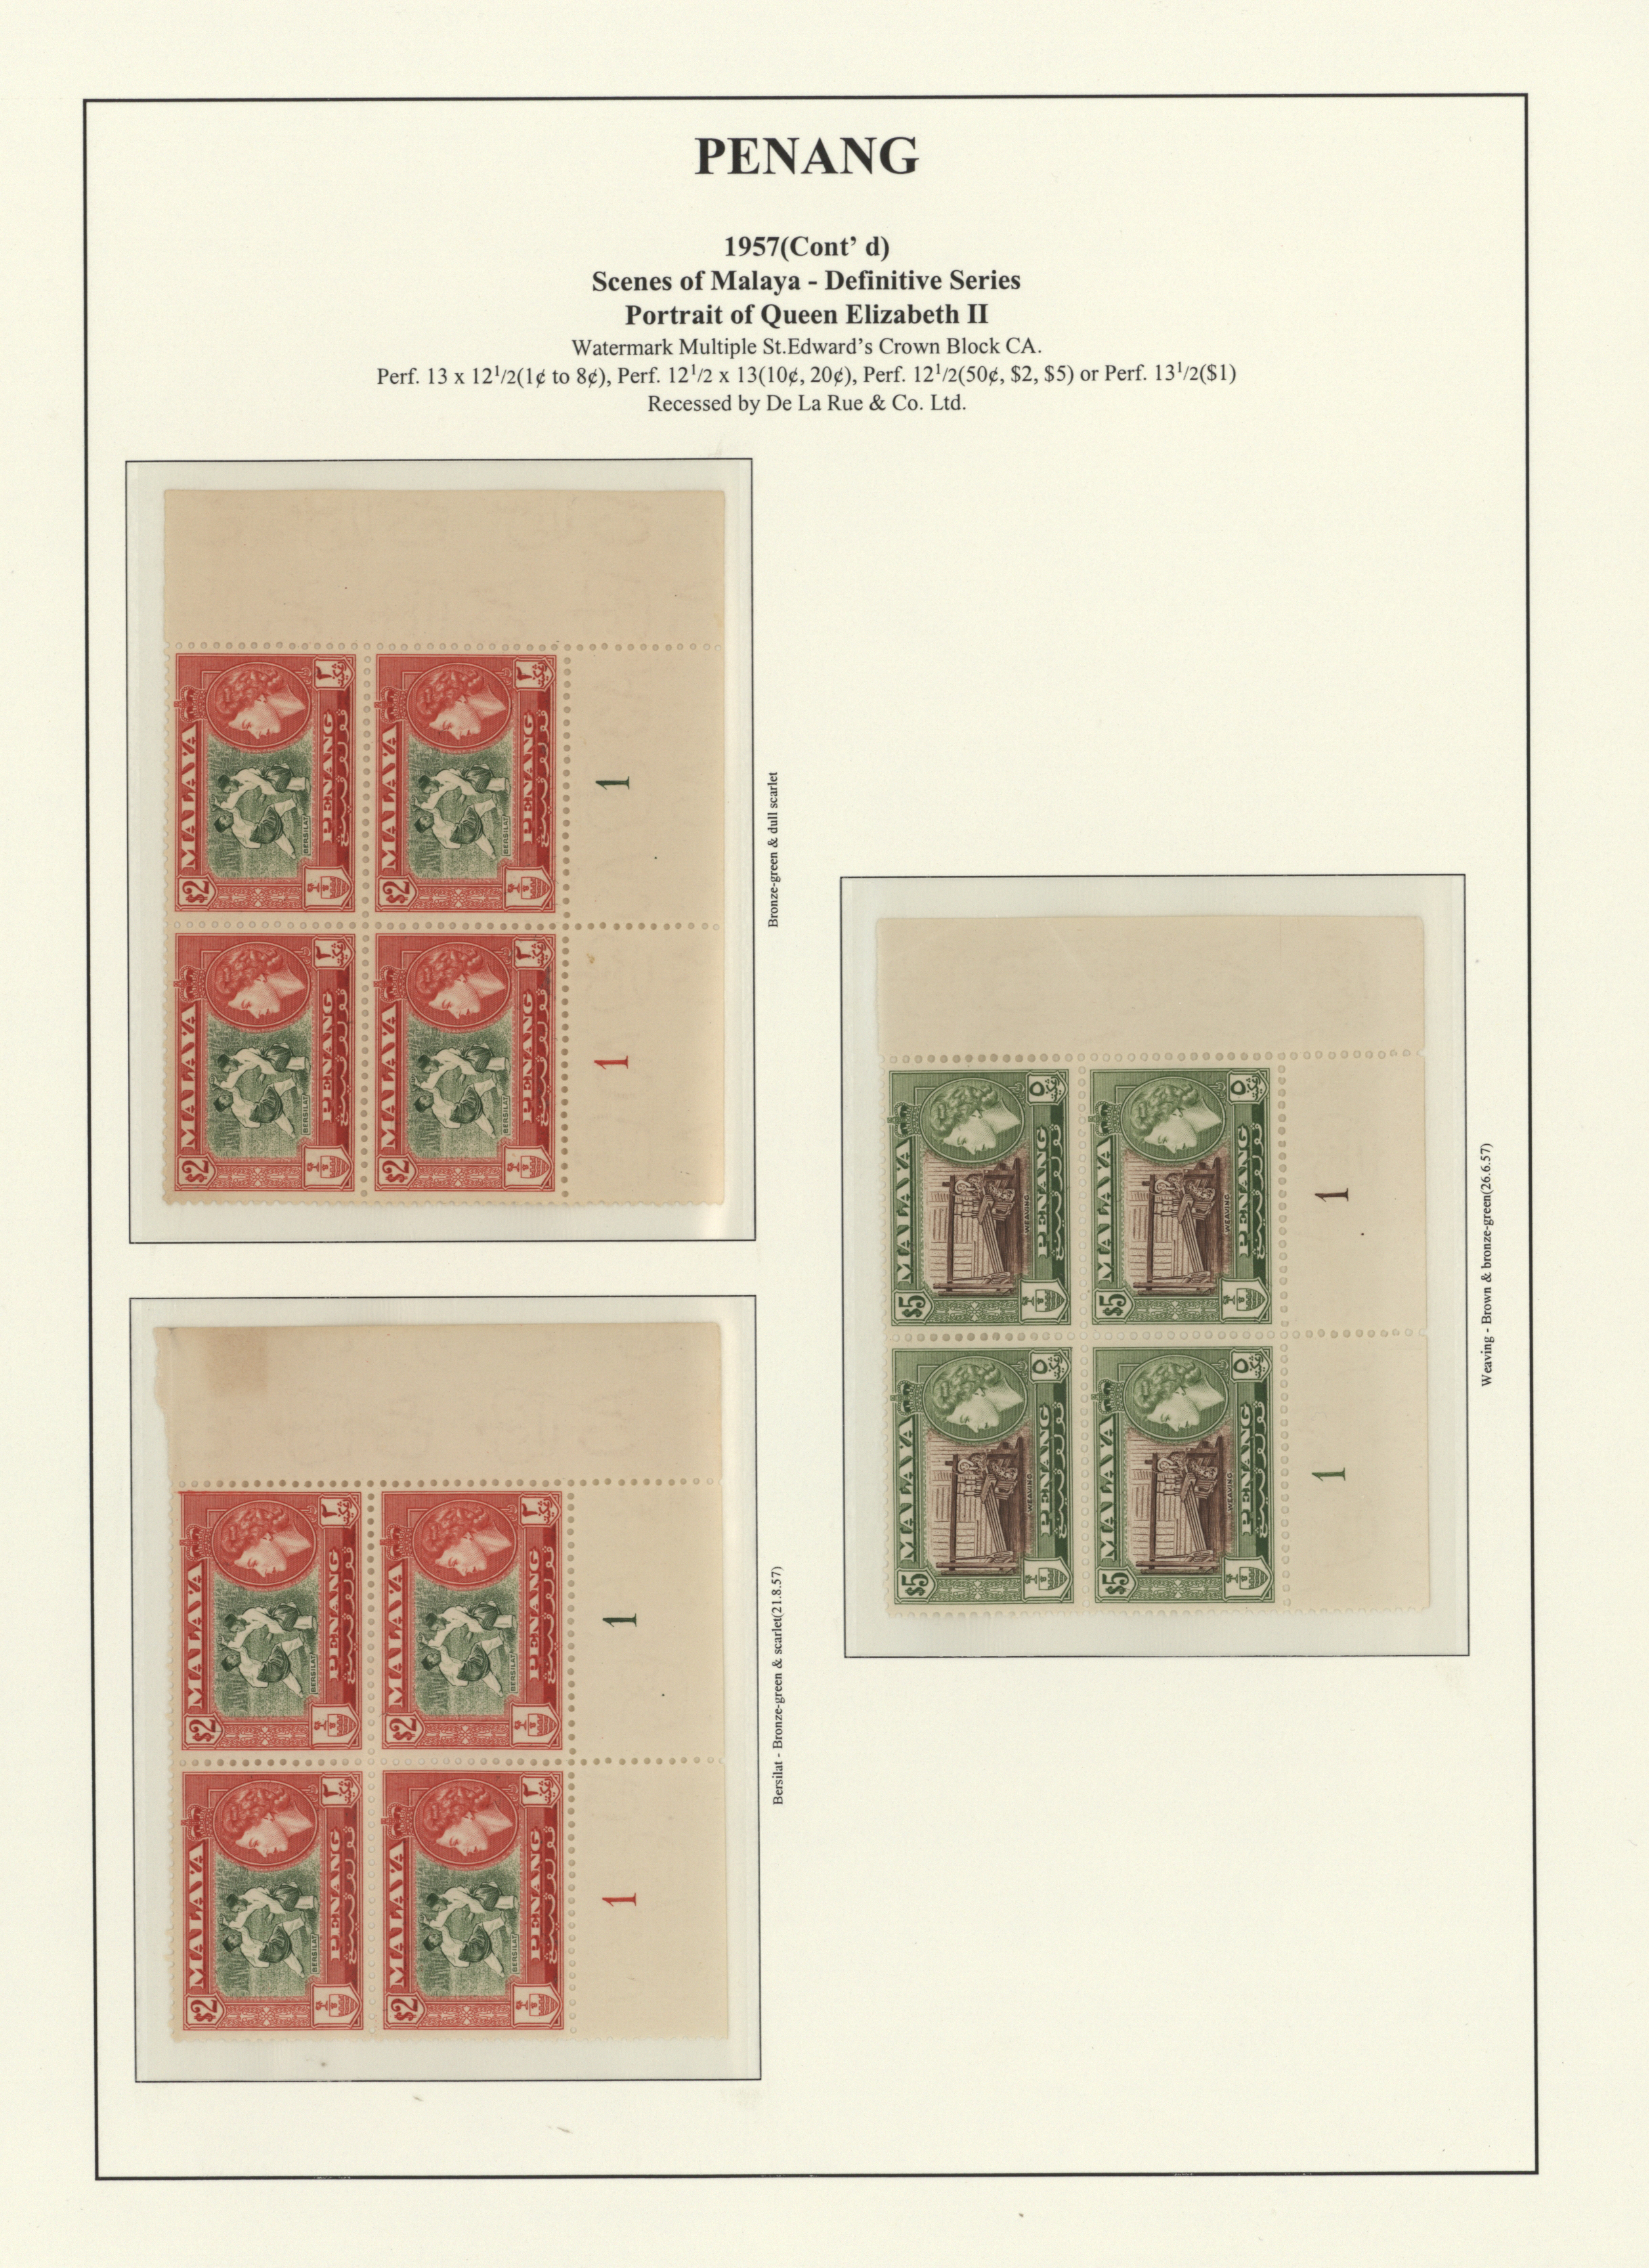 Lot 34574 - Malaiische Staaten - Penang  -  Auktionshaus Christoph Gärtner GmbH & Co. KG Collections Germany,  Collections Supplement, Surprise boxes #39 Day 7